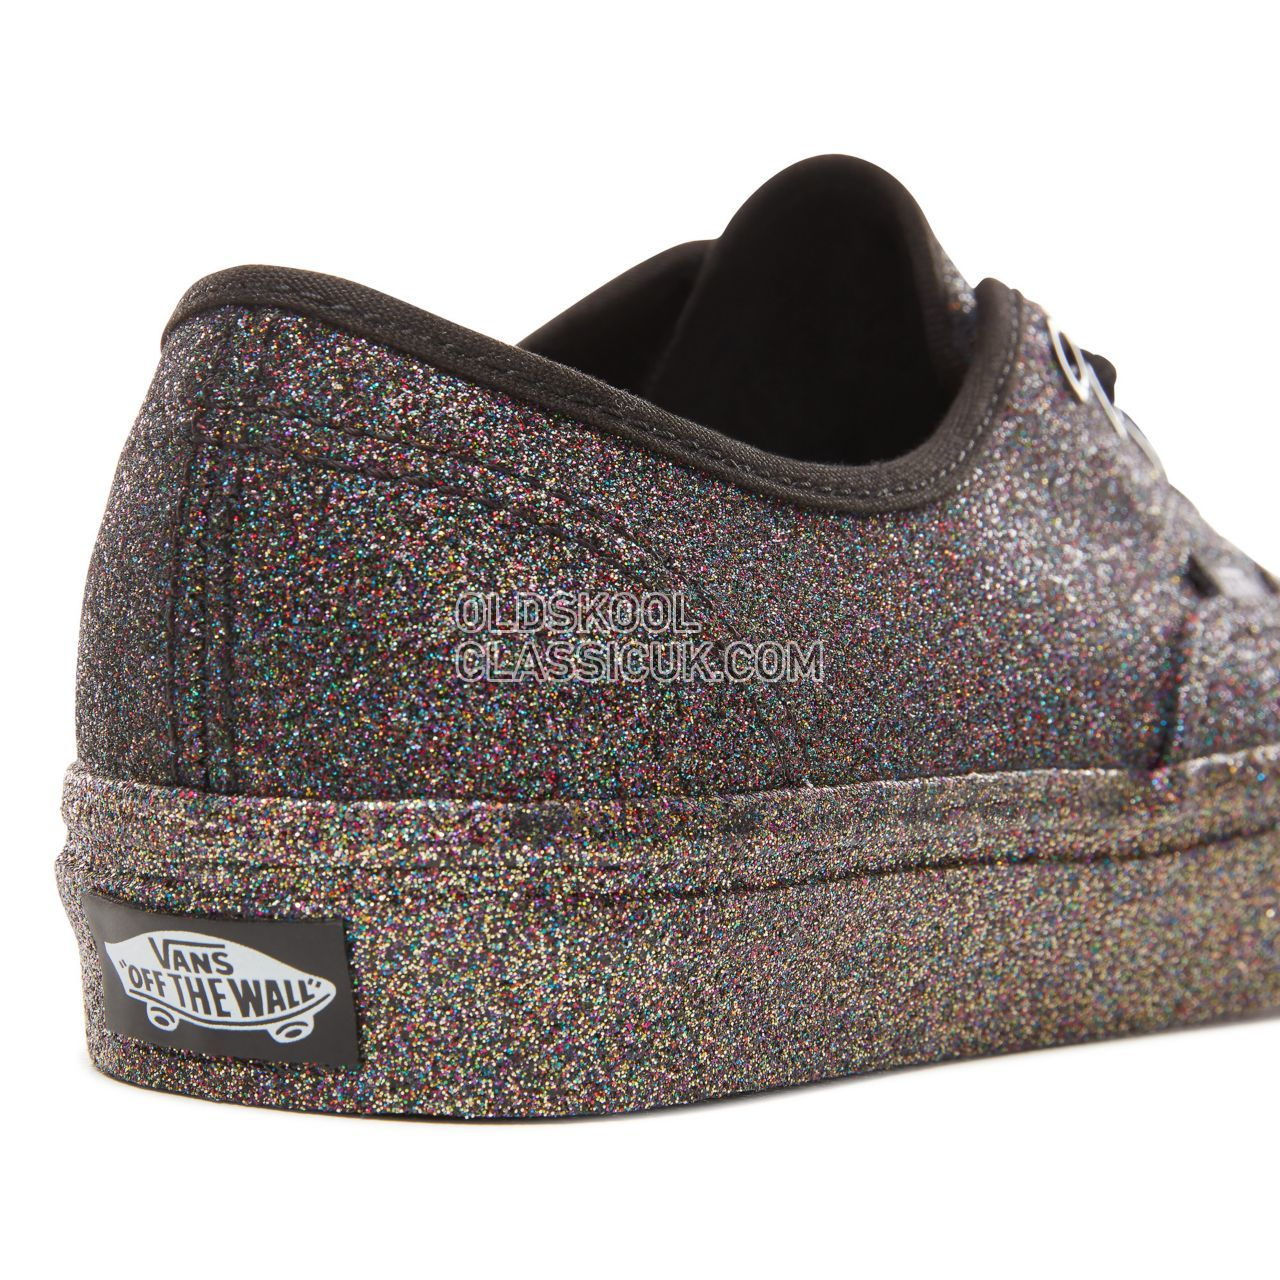 Vans Rainbow Glitter Authentic Sneakers Womens (Rainbow Glitter) Black/Black VN0A38EMUKN Shoes